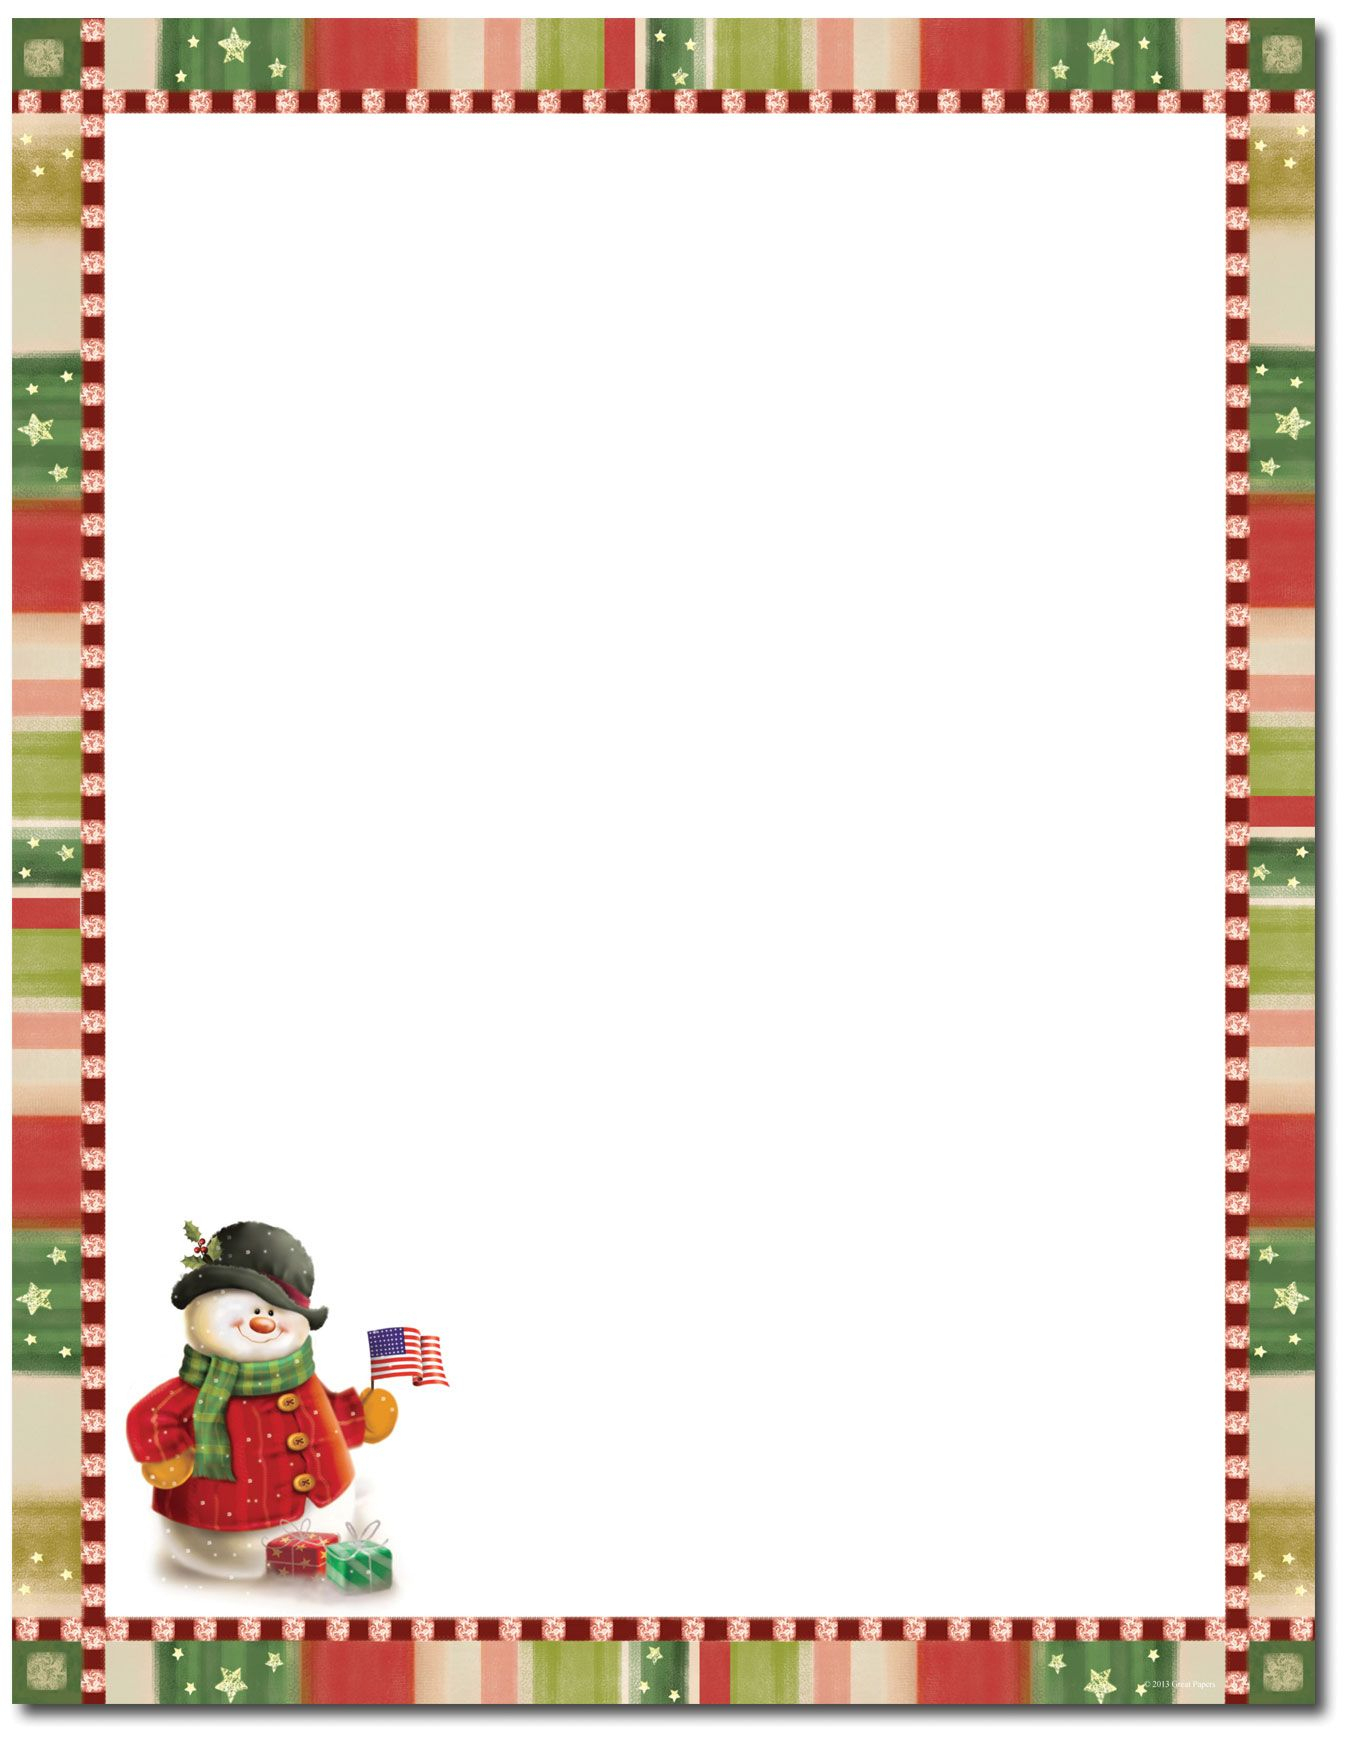 Patriotic Snowman Letterhead | Christmas Stationery | Christmas - Free Printable Christmas Stationery Paper